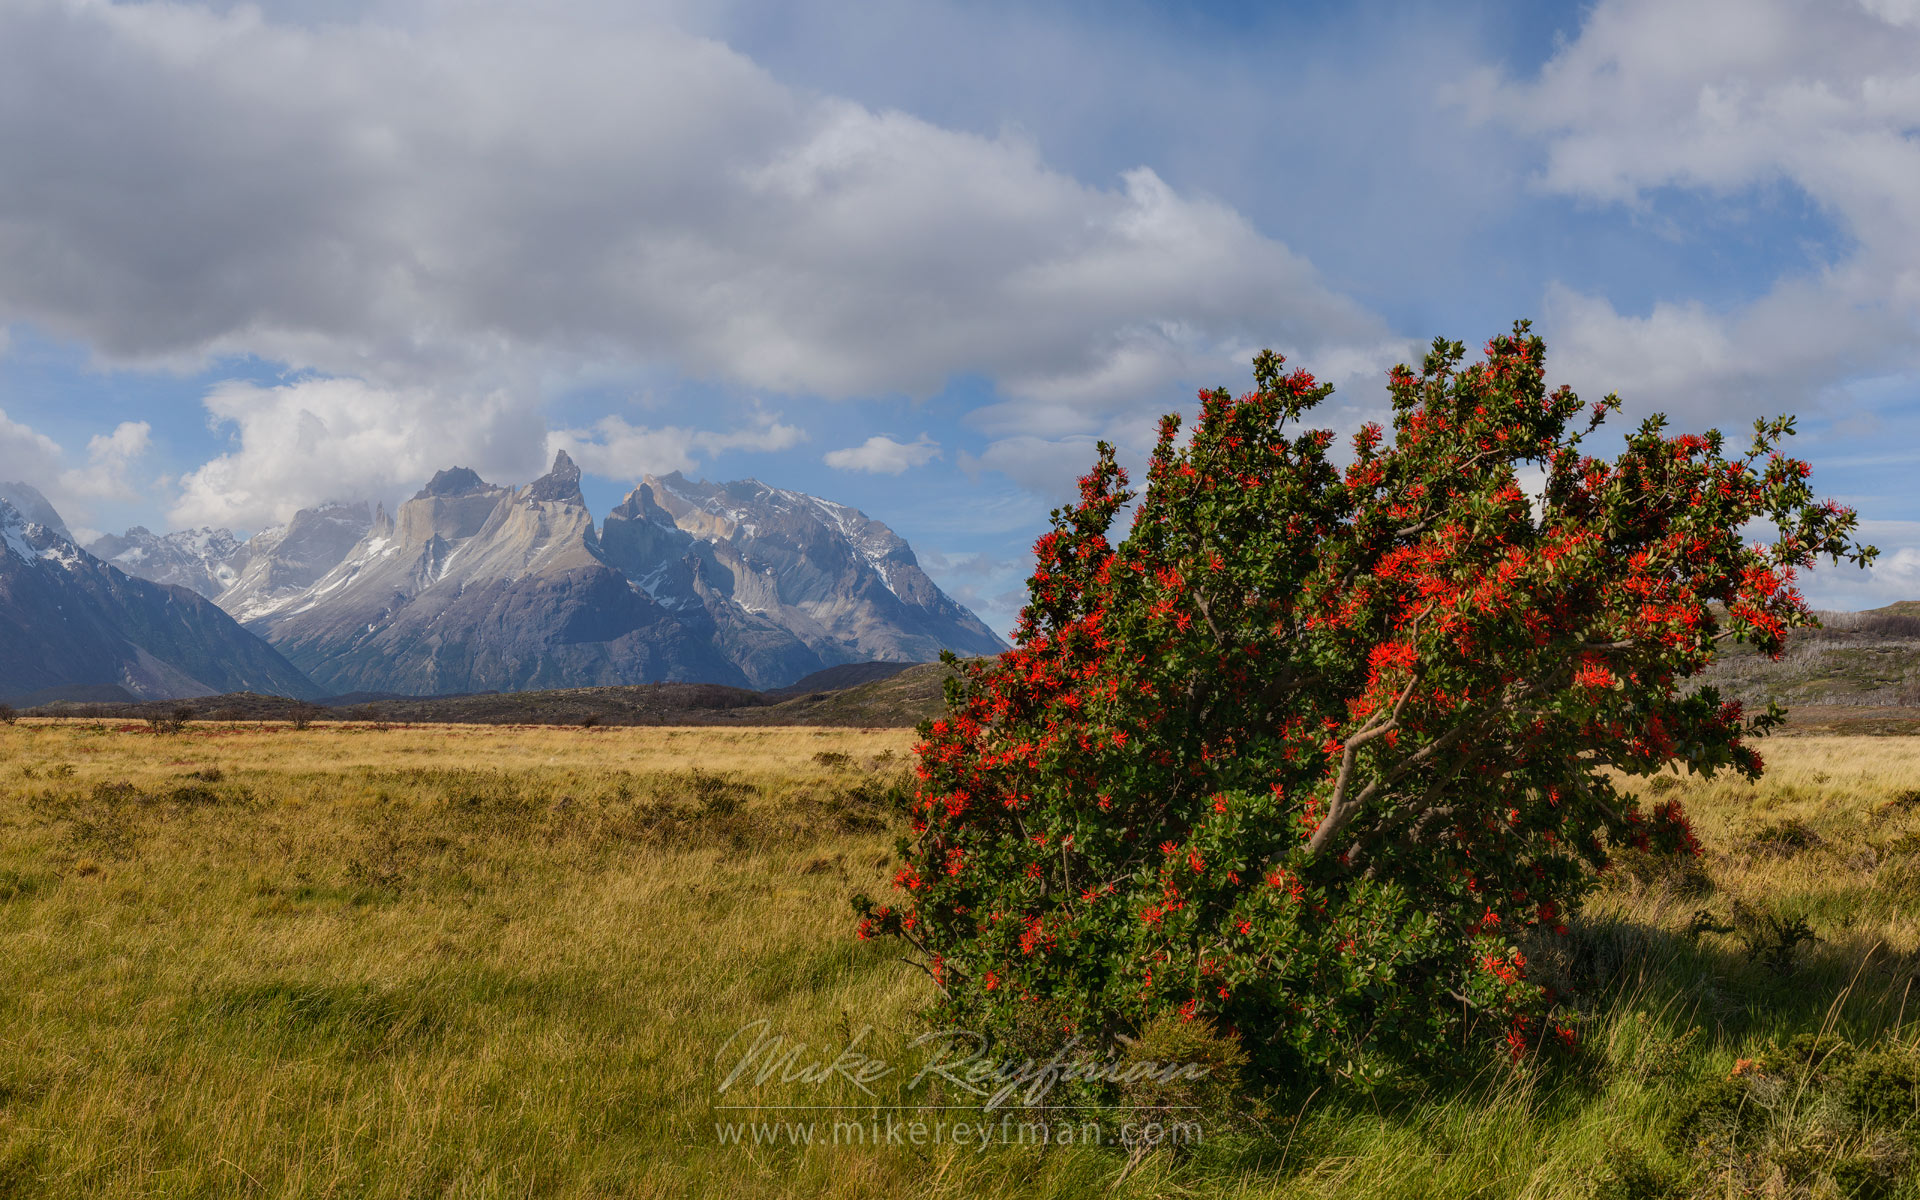 Patagonian Steppes. Fire Bush (Hamelia patens) with Cordillera del Paine on the background. Torres del Paine National Park, Ultima Esperanza Province, Magallanes and Antartica Chilena Region XII, Patagonia, Chile. - Torres-Del-Paine-National-Park-Patagonia-Chile - Mike Reyfman Photography